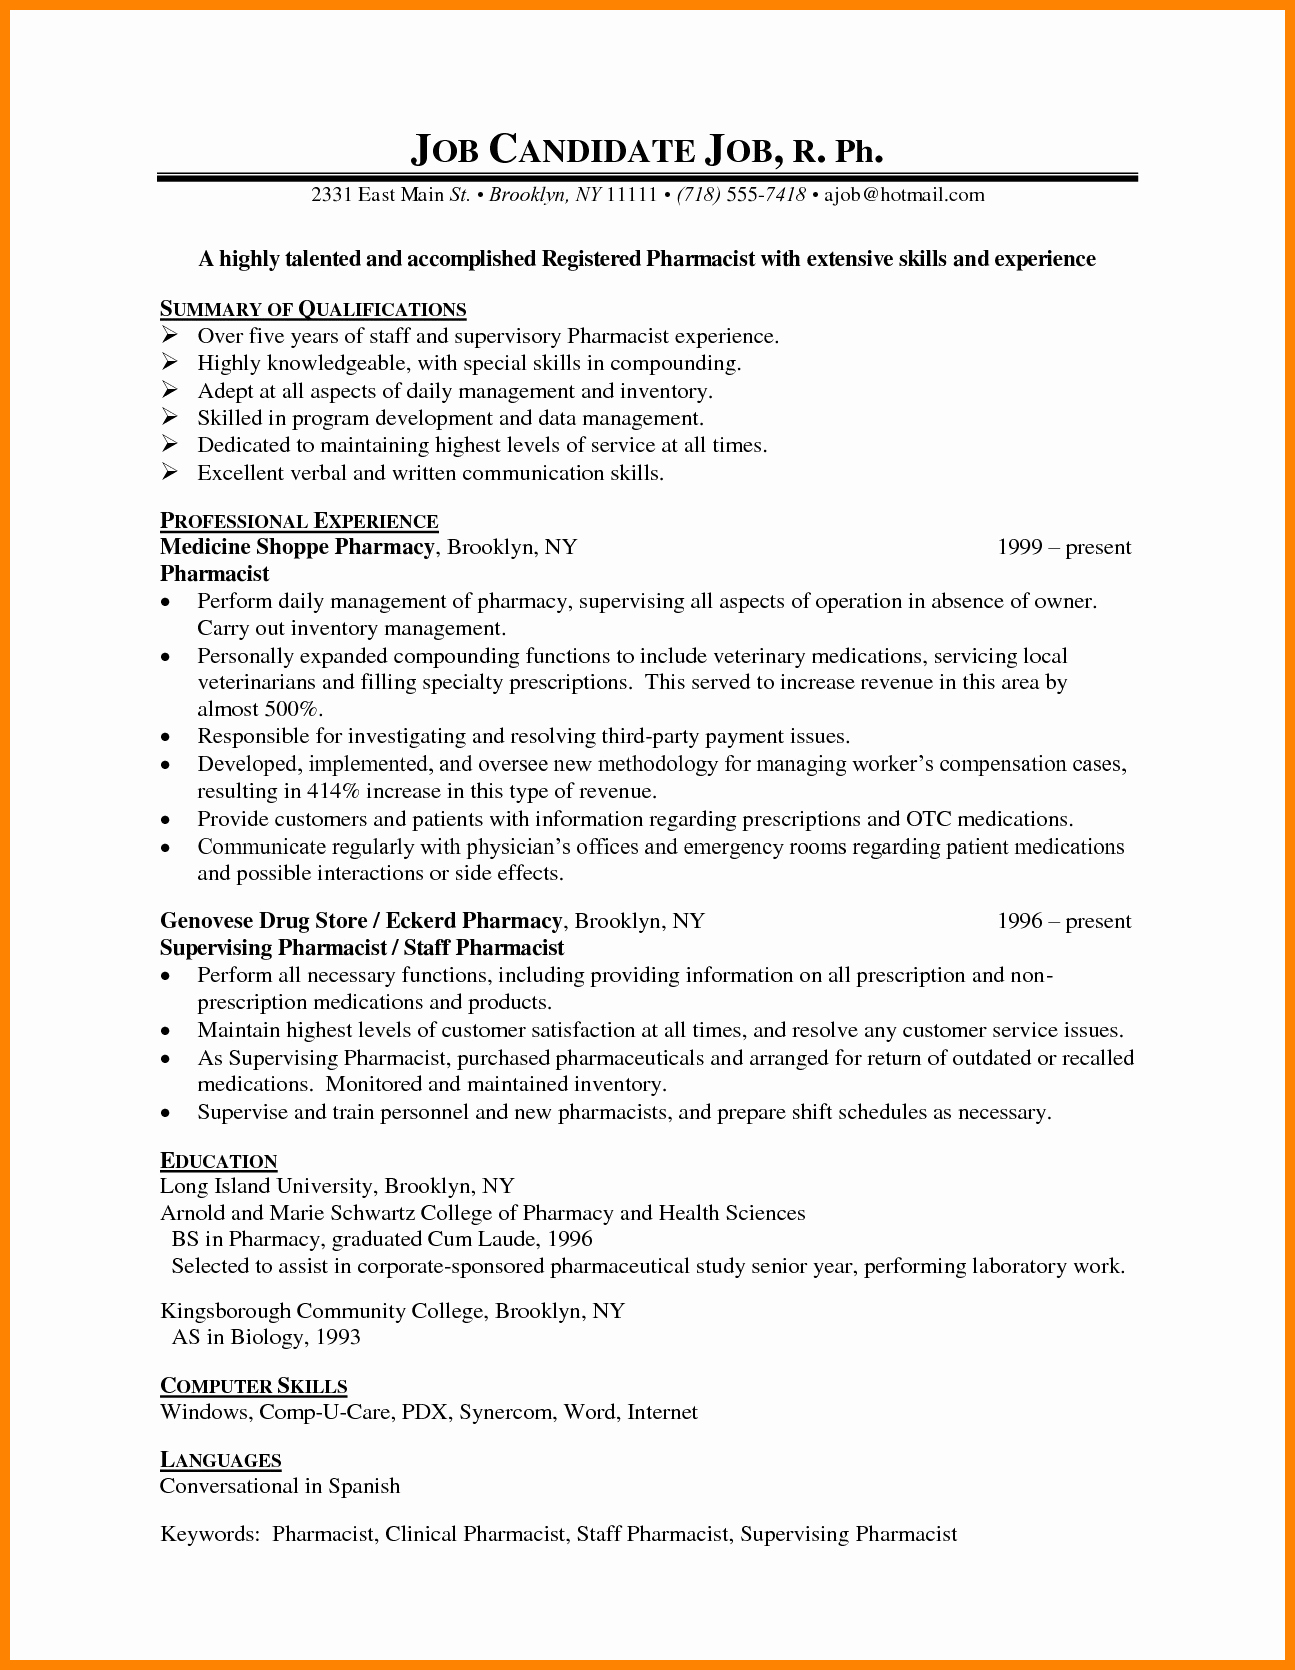 Pharmacy Curriculum Vitae Template Best Of 8 Cv Sample for Pharmacist